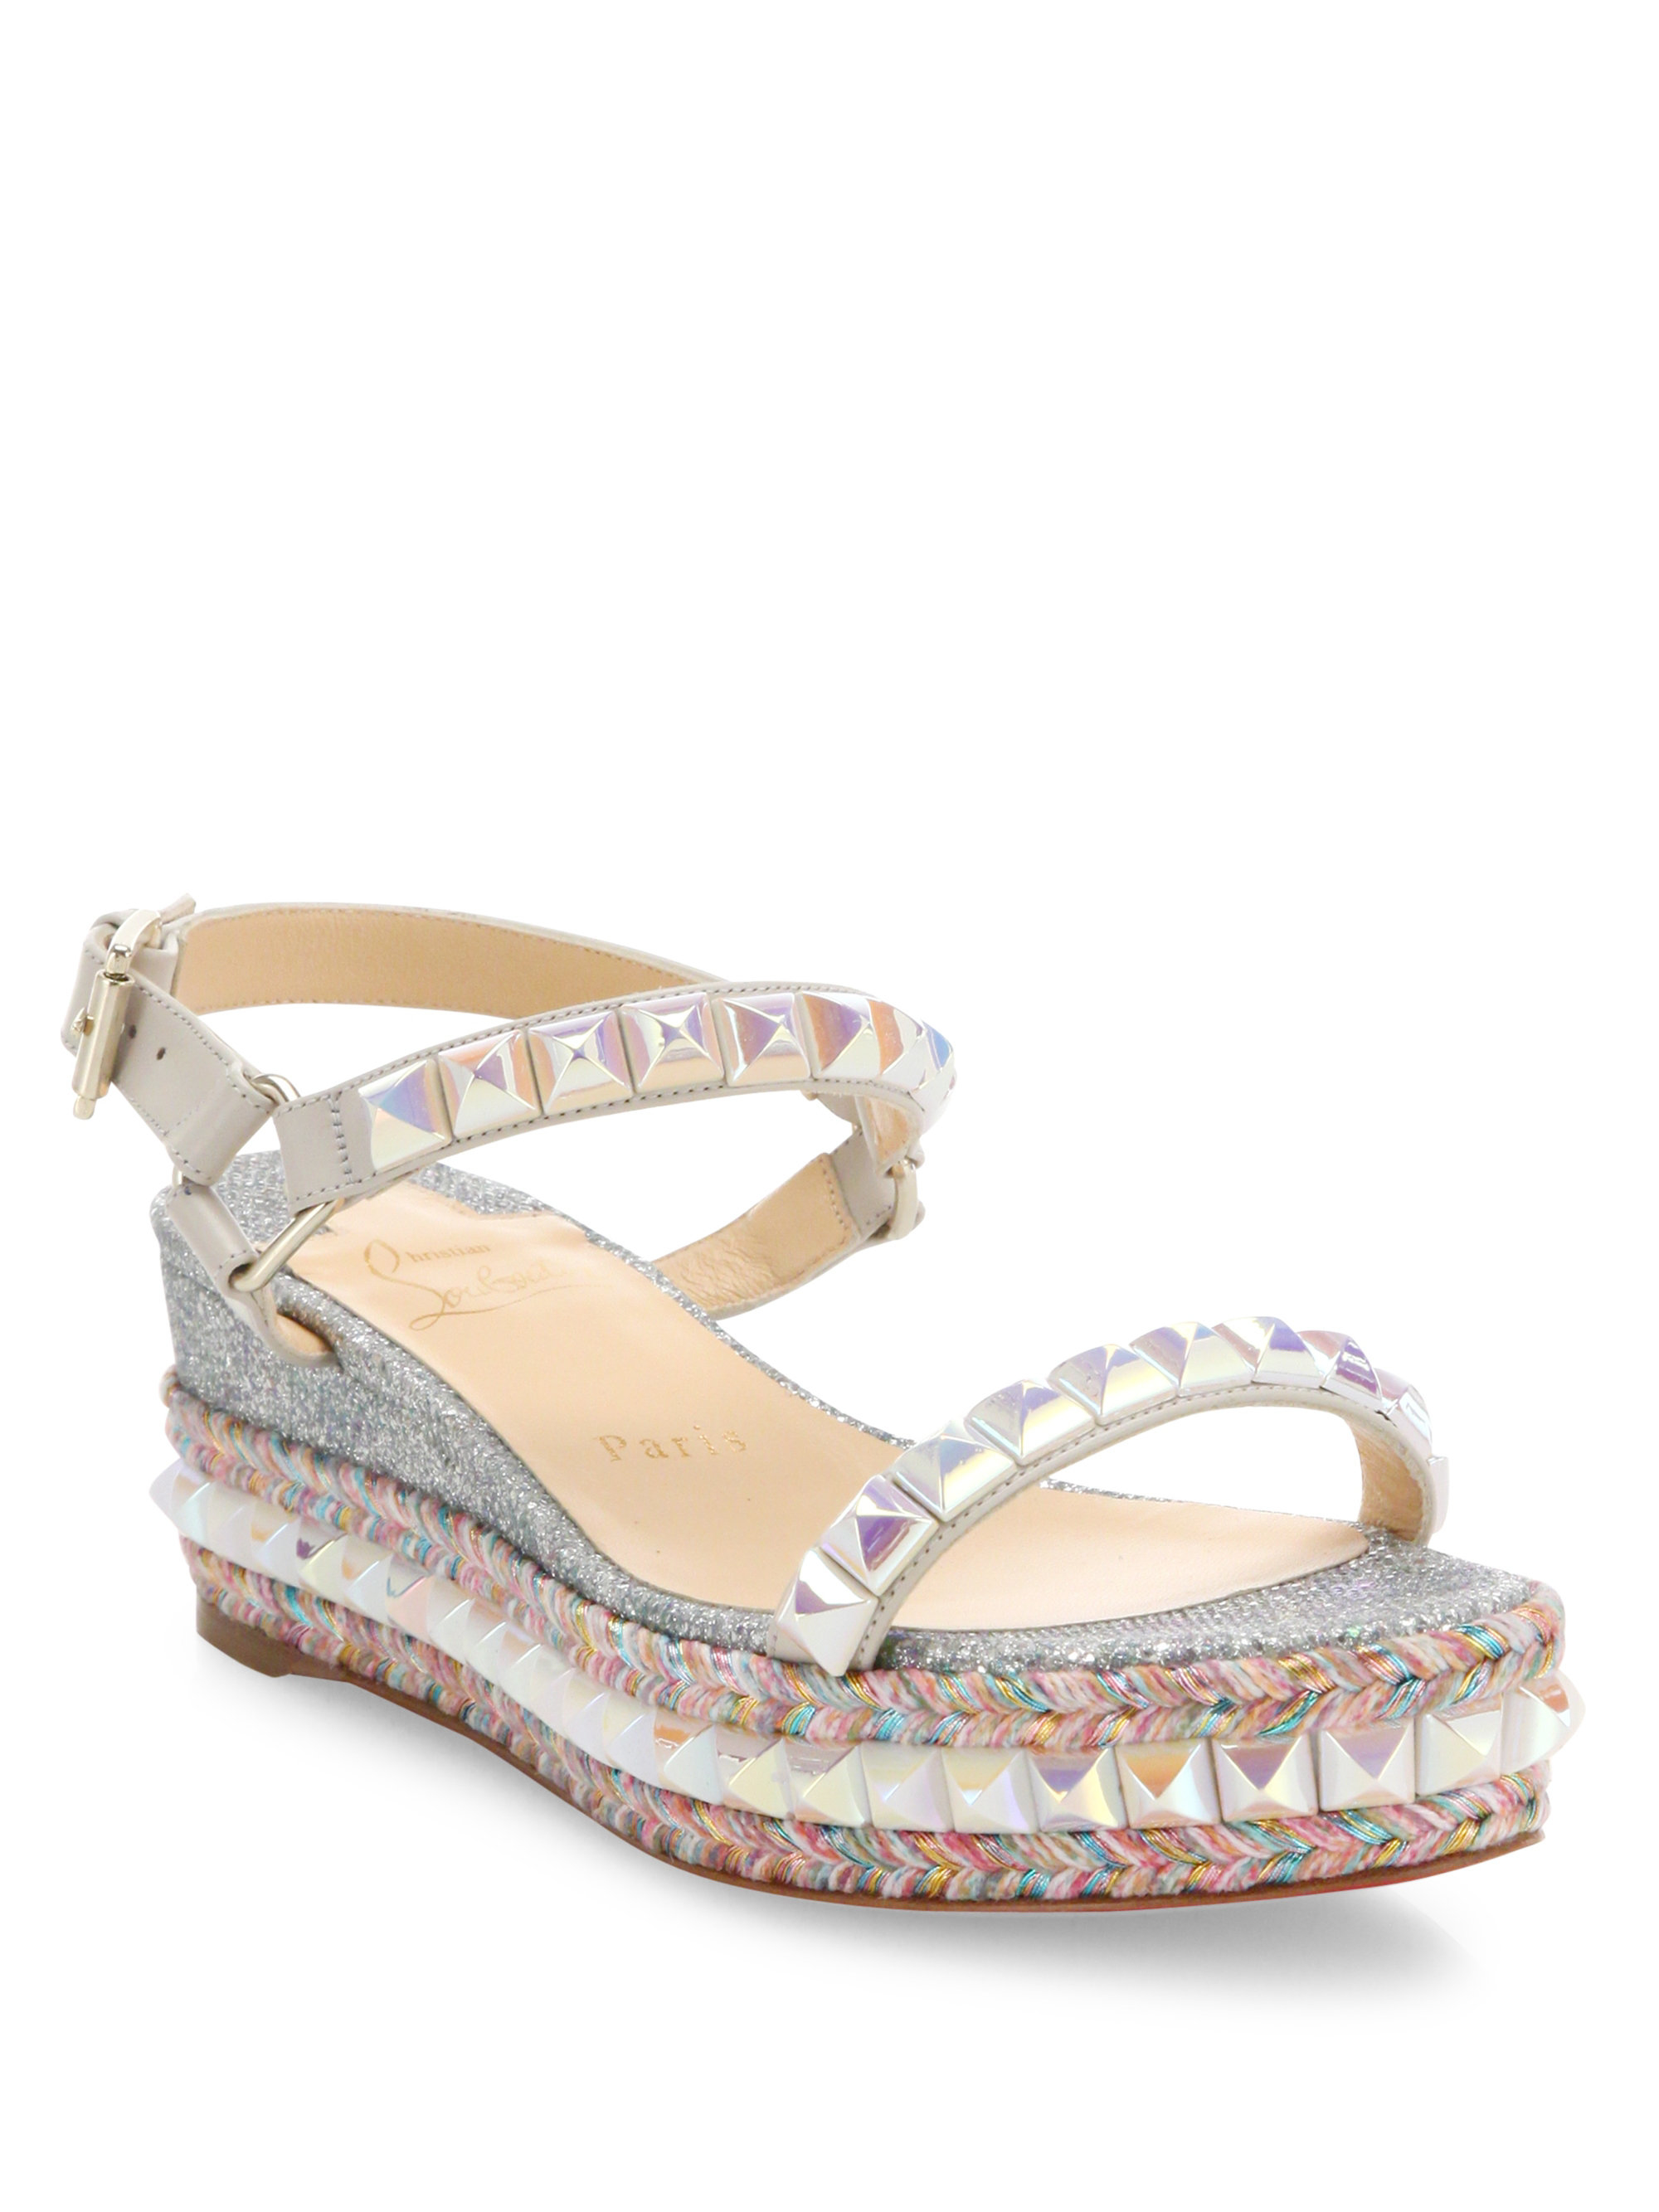 Christian Louboutin Cataclou Glitter Amp Studded Espadrille